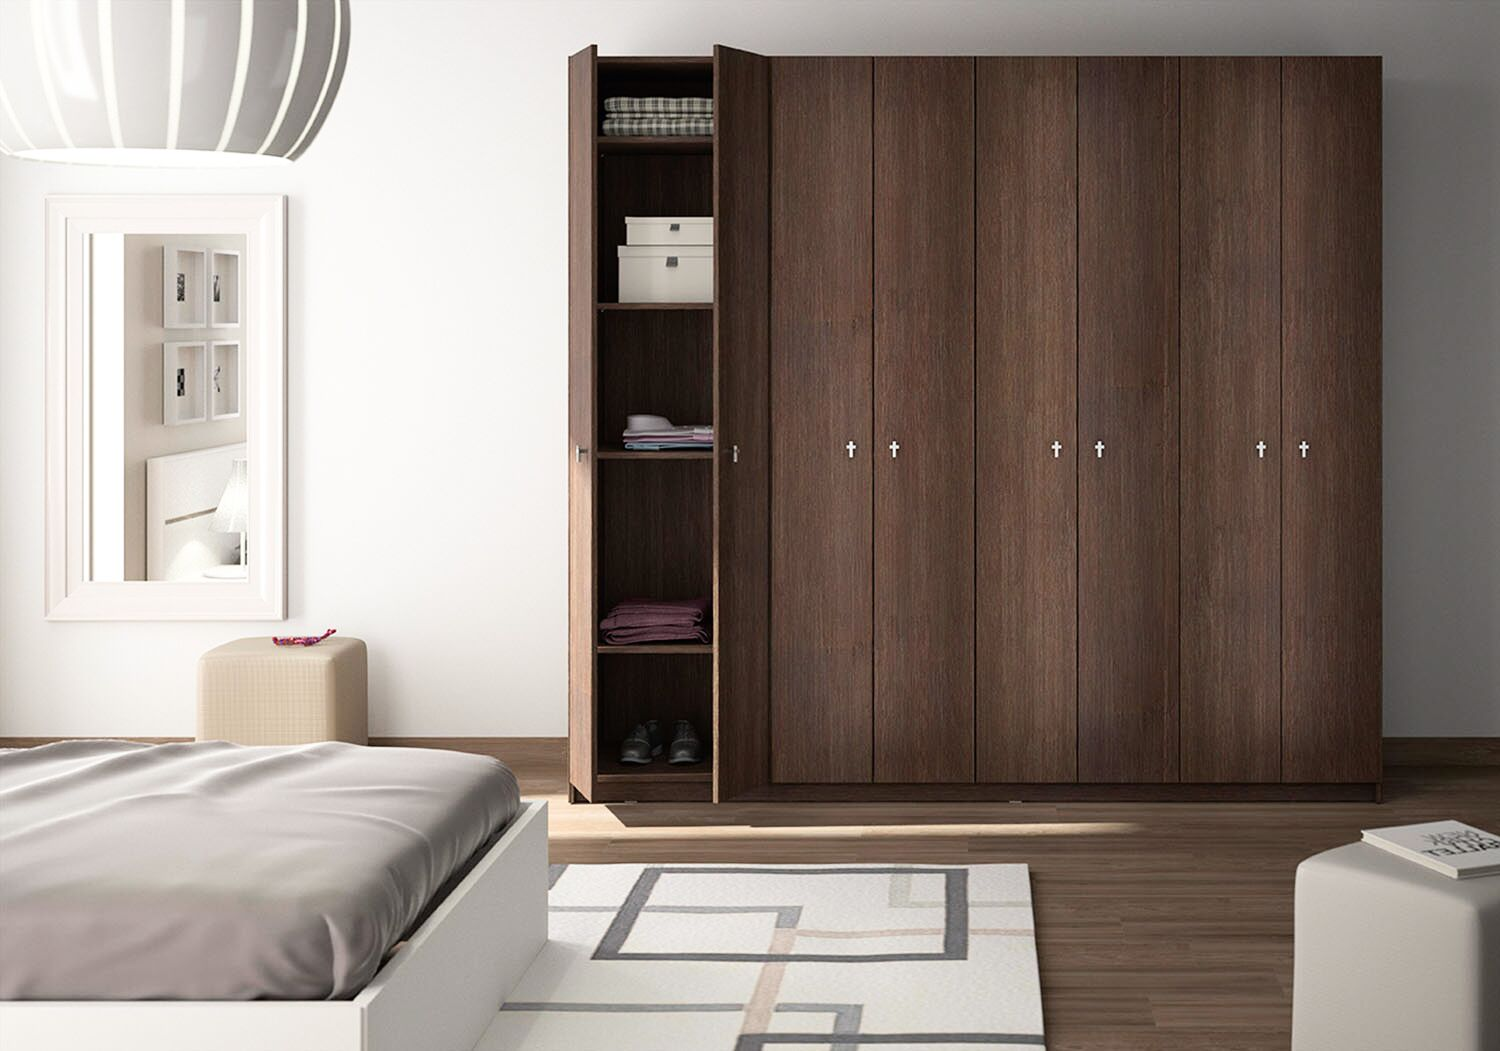 les diff rences entre l 39 armoire modulable et sur mesure blog. Black Bedroom Furniture Sets. Home Design Ideas